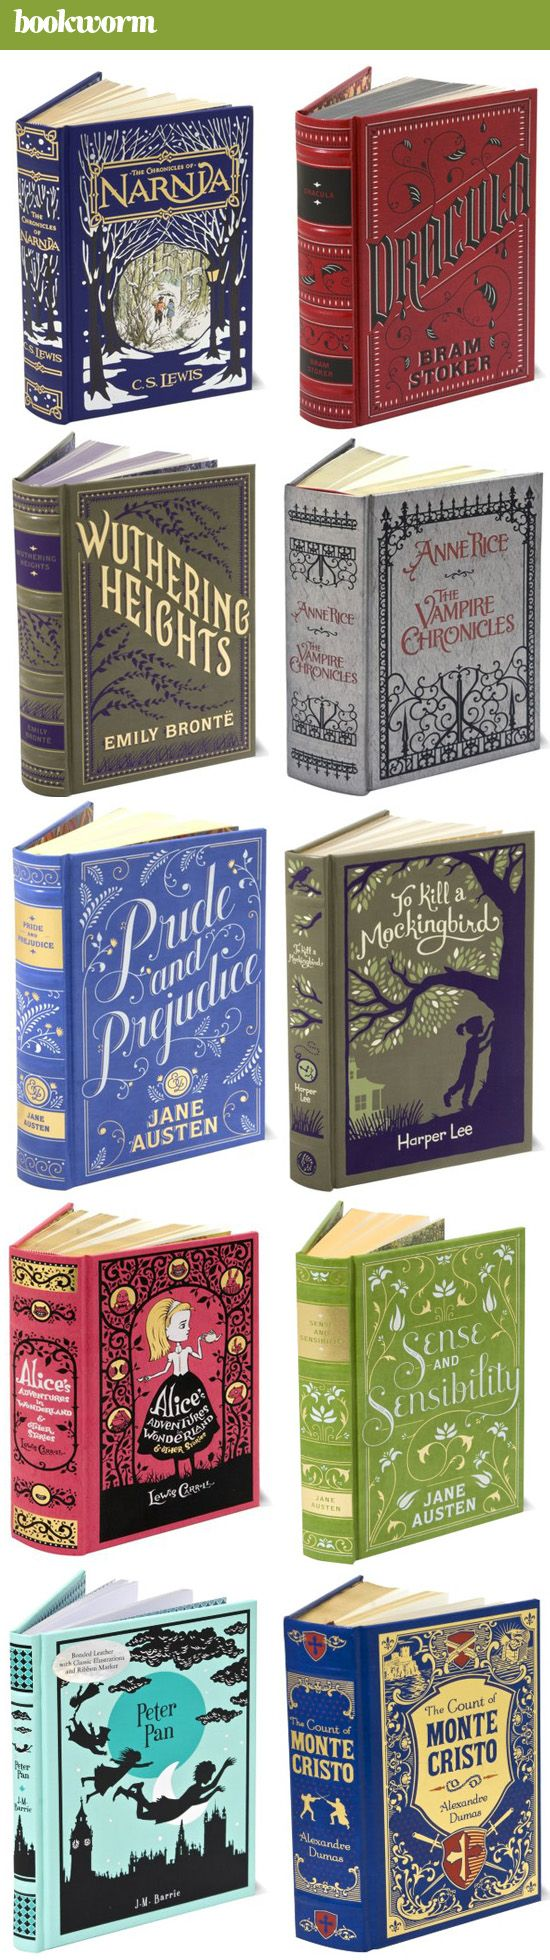 New Barnes and Noble editions! I want!!!!!